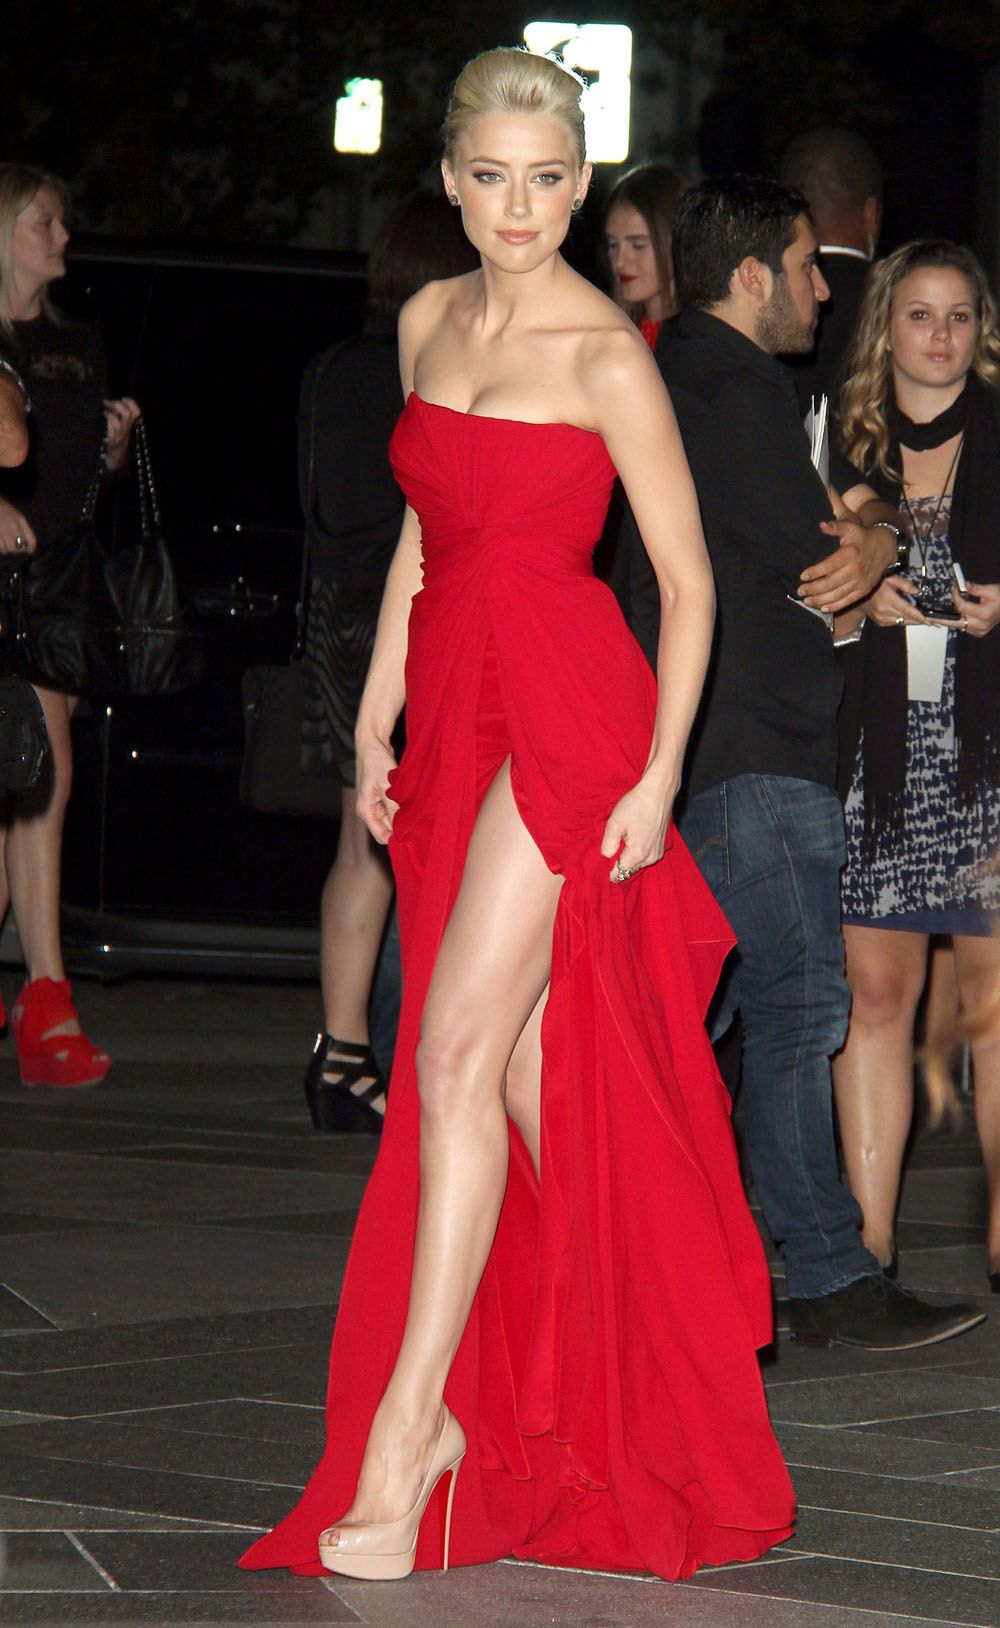 989e4cf1d70 Sexiest red dress of all time #dress #gown #red #sexy #women #fashion  #styles #celebrity #valentinesday